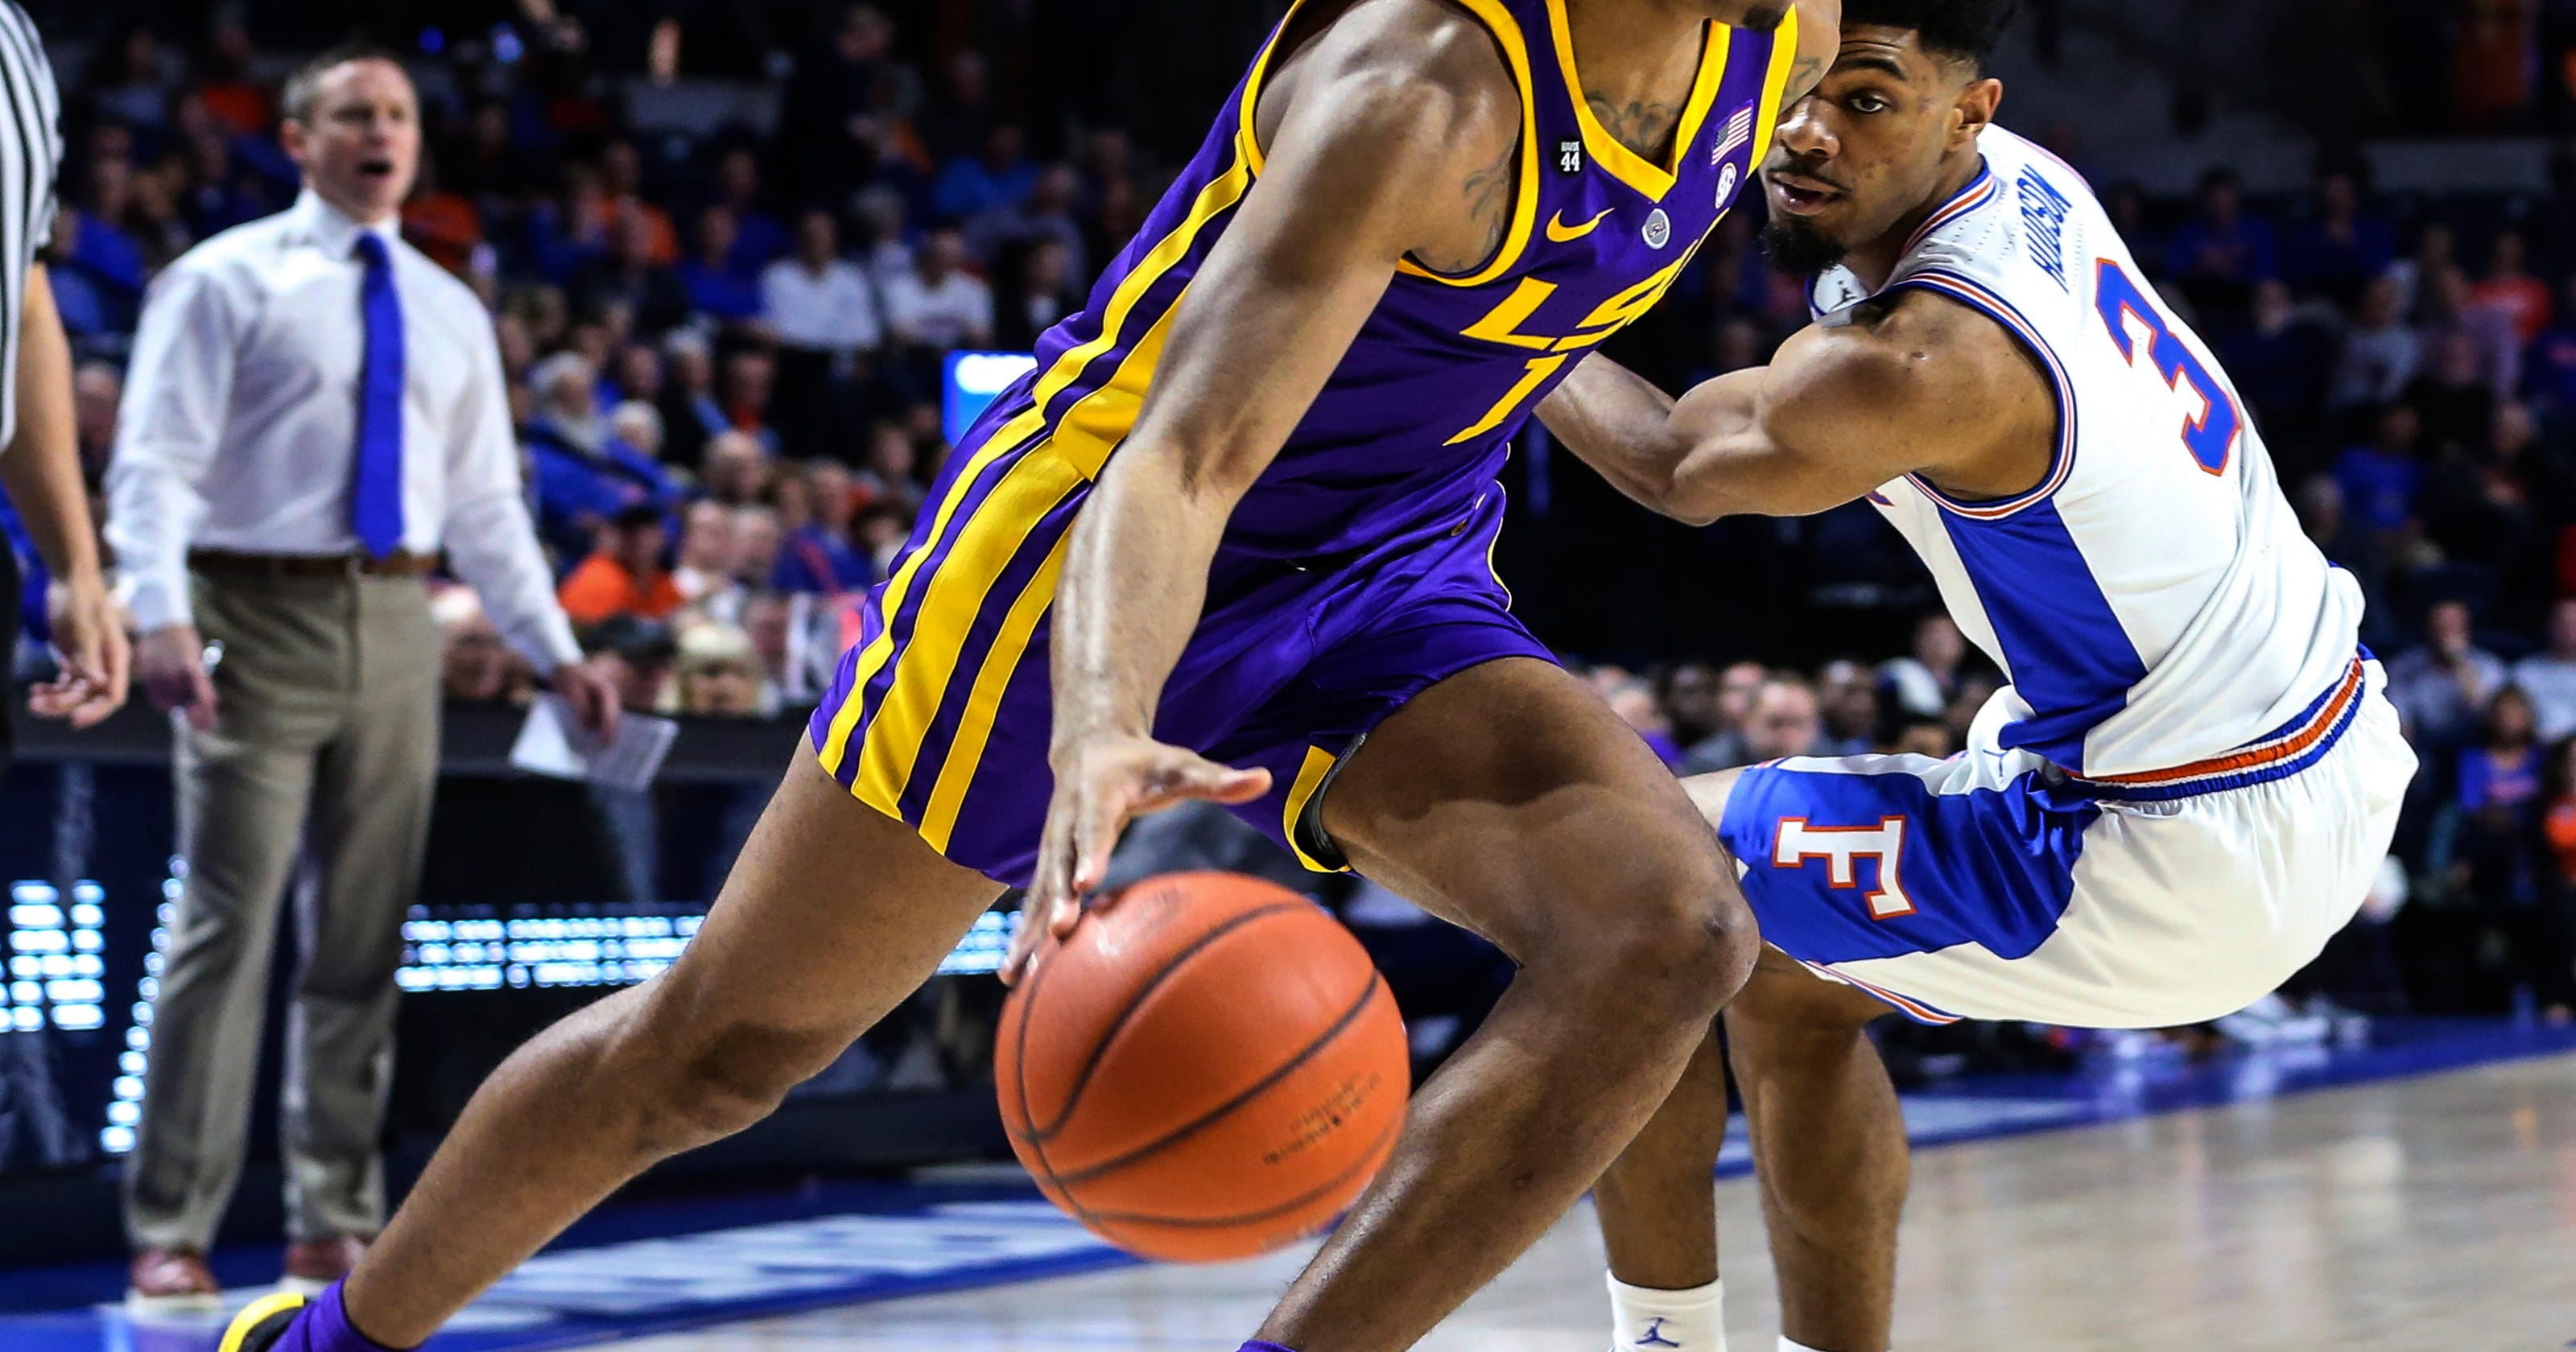 LSU's Javonte Smart cleared to play in SEC Tournament